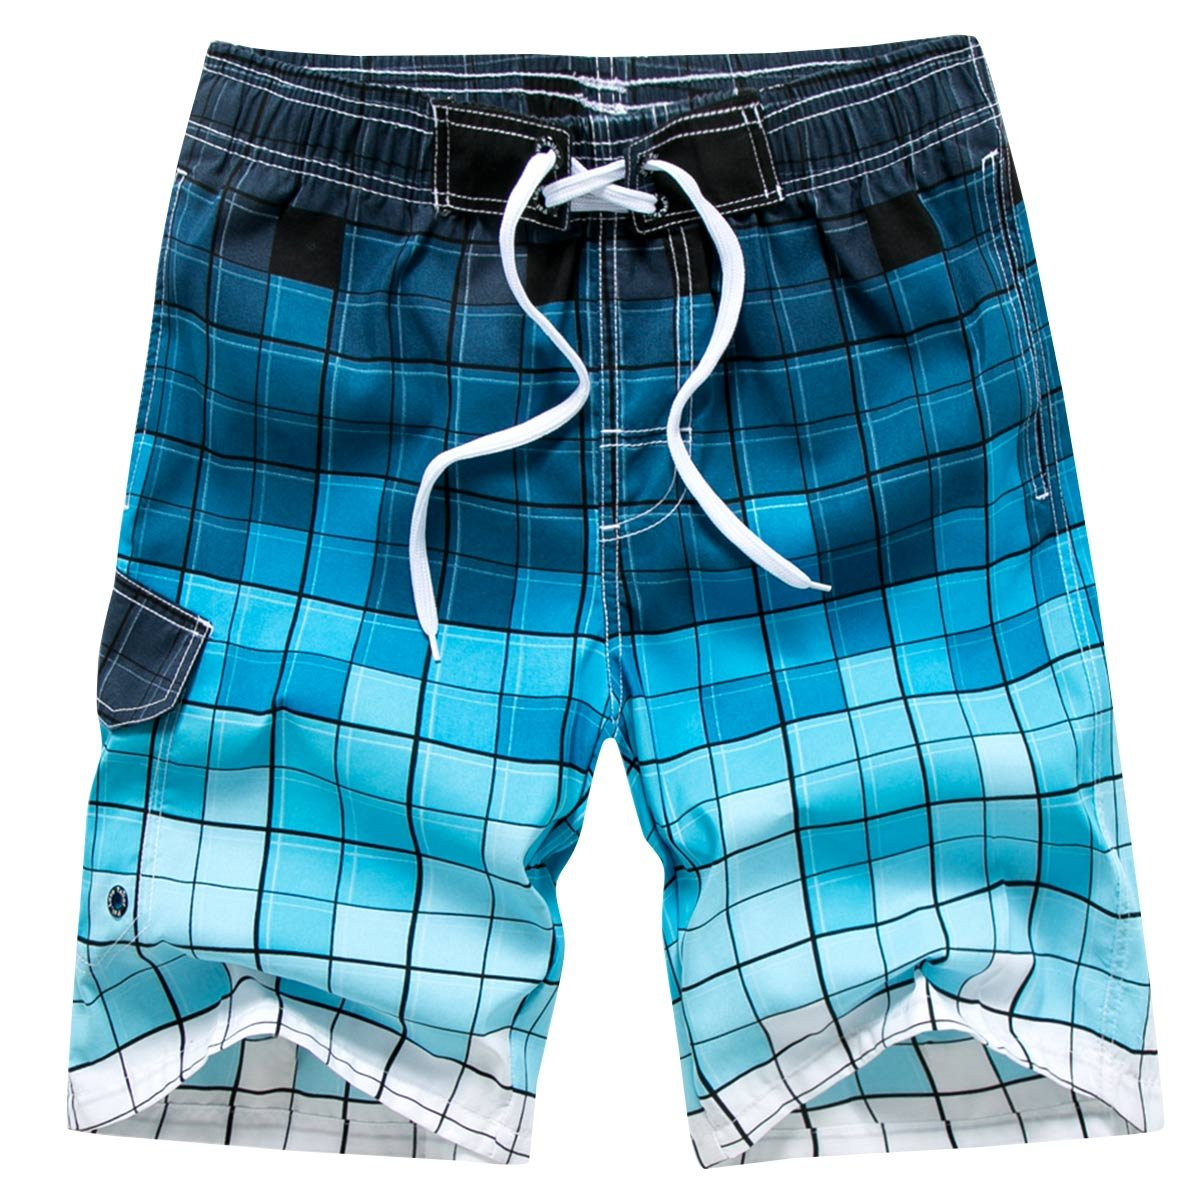 Men's Tropical Island Printing Cotton Quick-Drying Cargo Water Shorts Fashion BreathableBathing Suits, Blue Size L